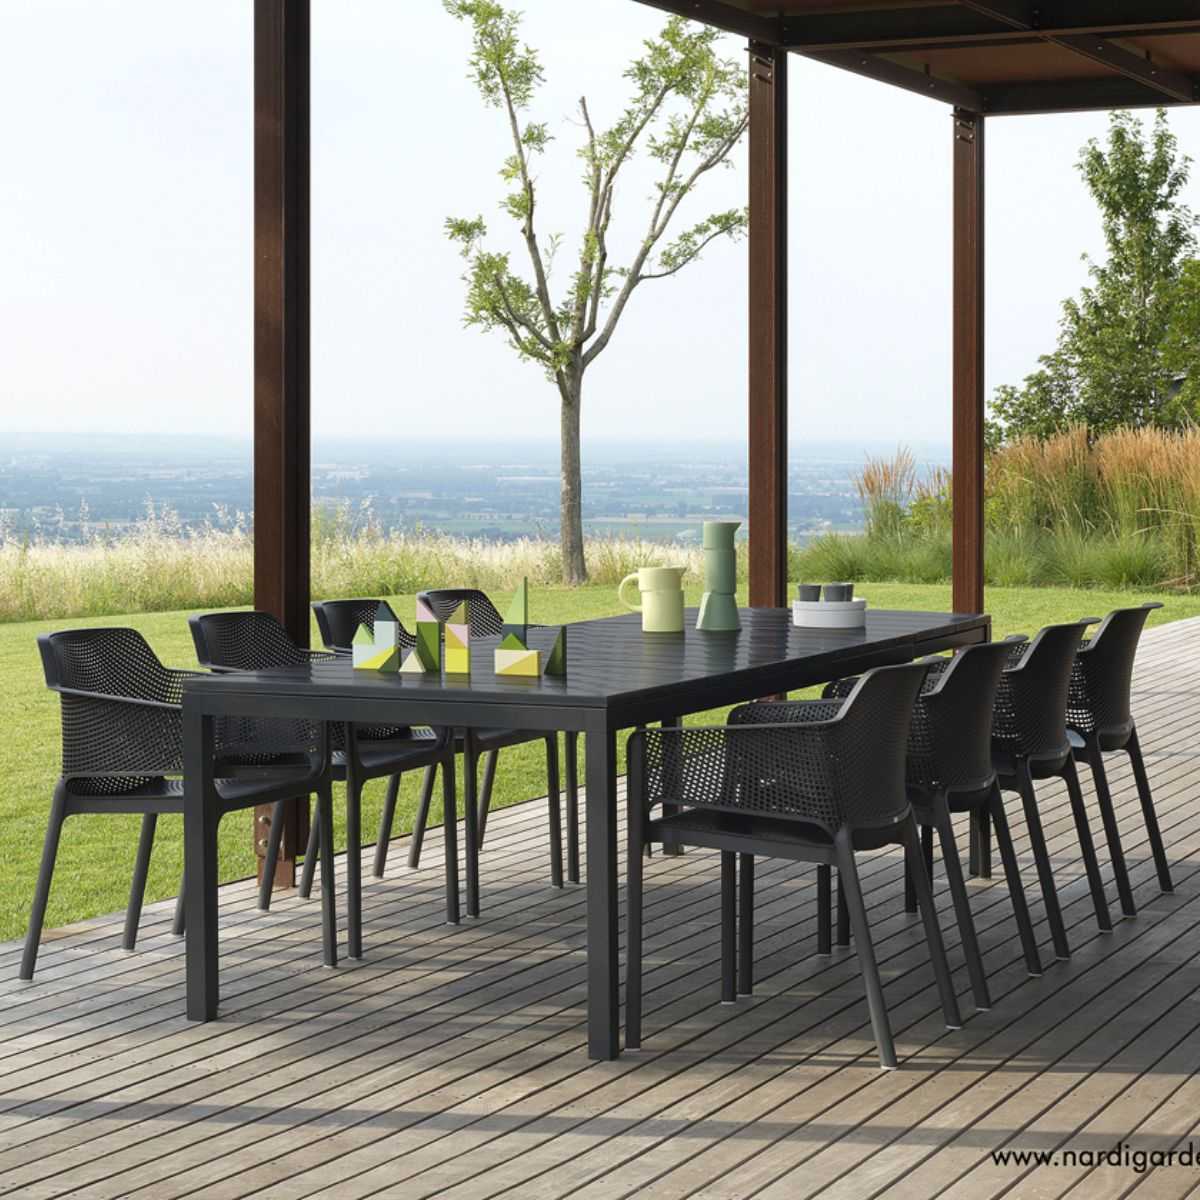 Table de jardin extensible design rio nardi zendart design for Jardin design